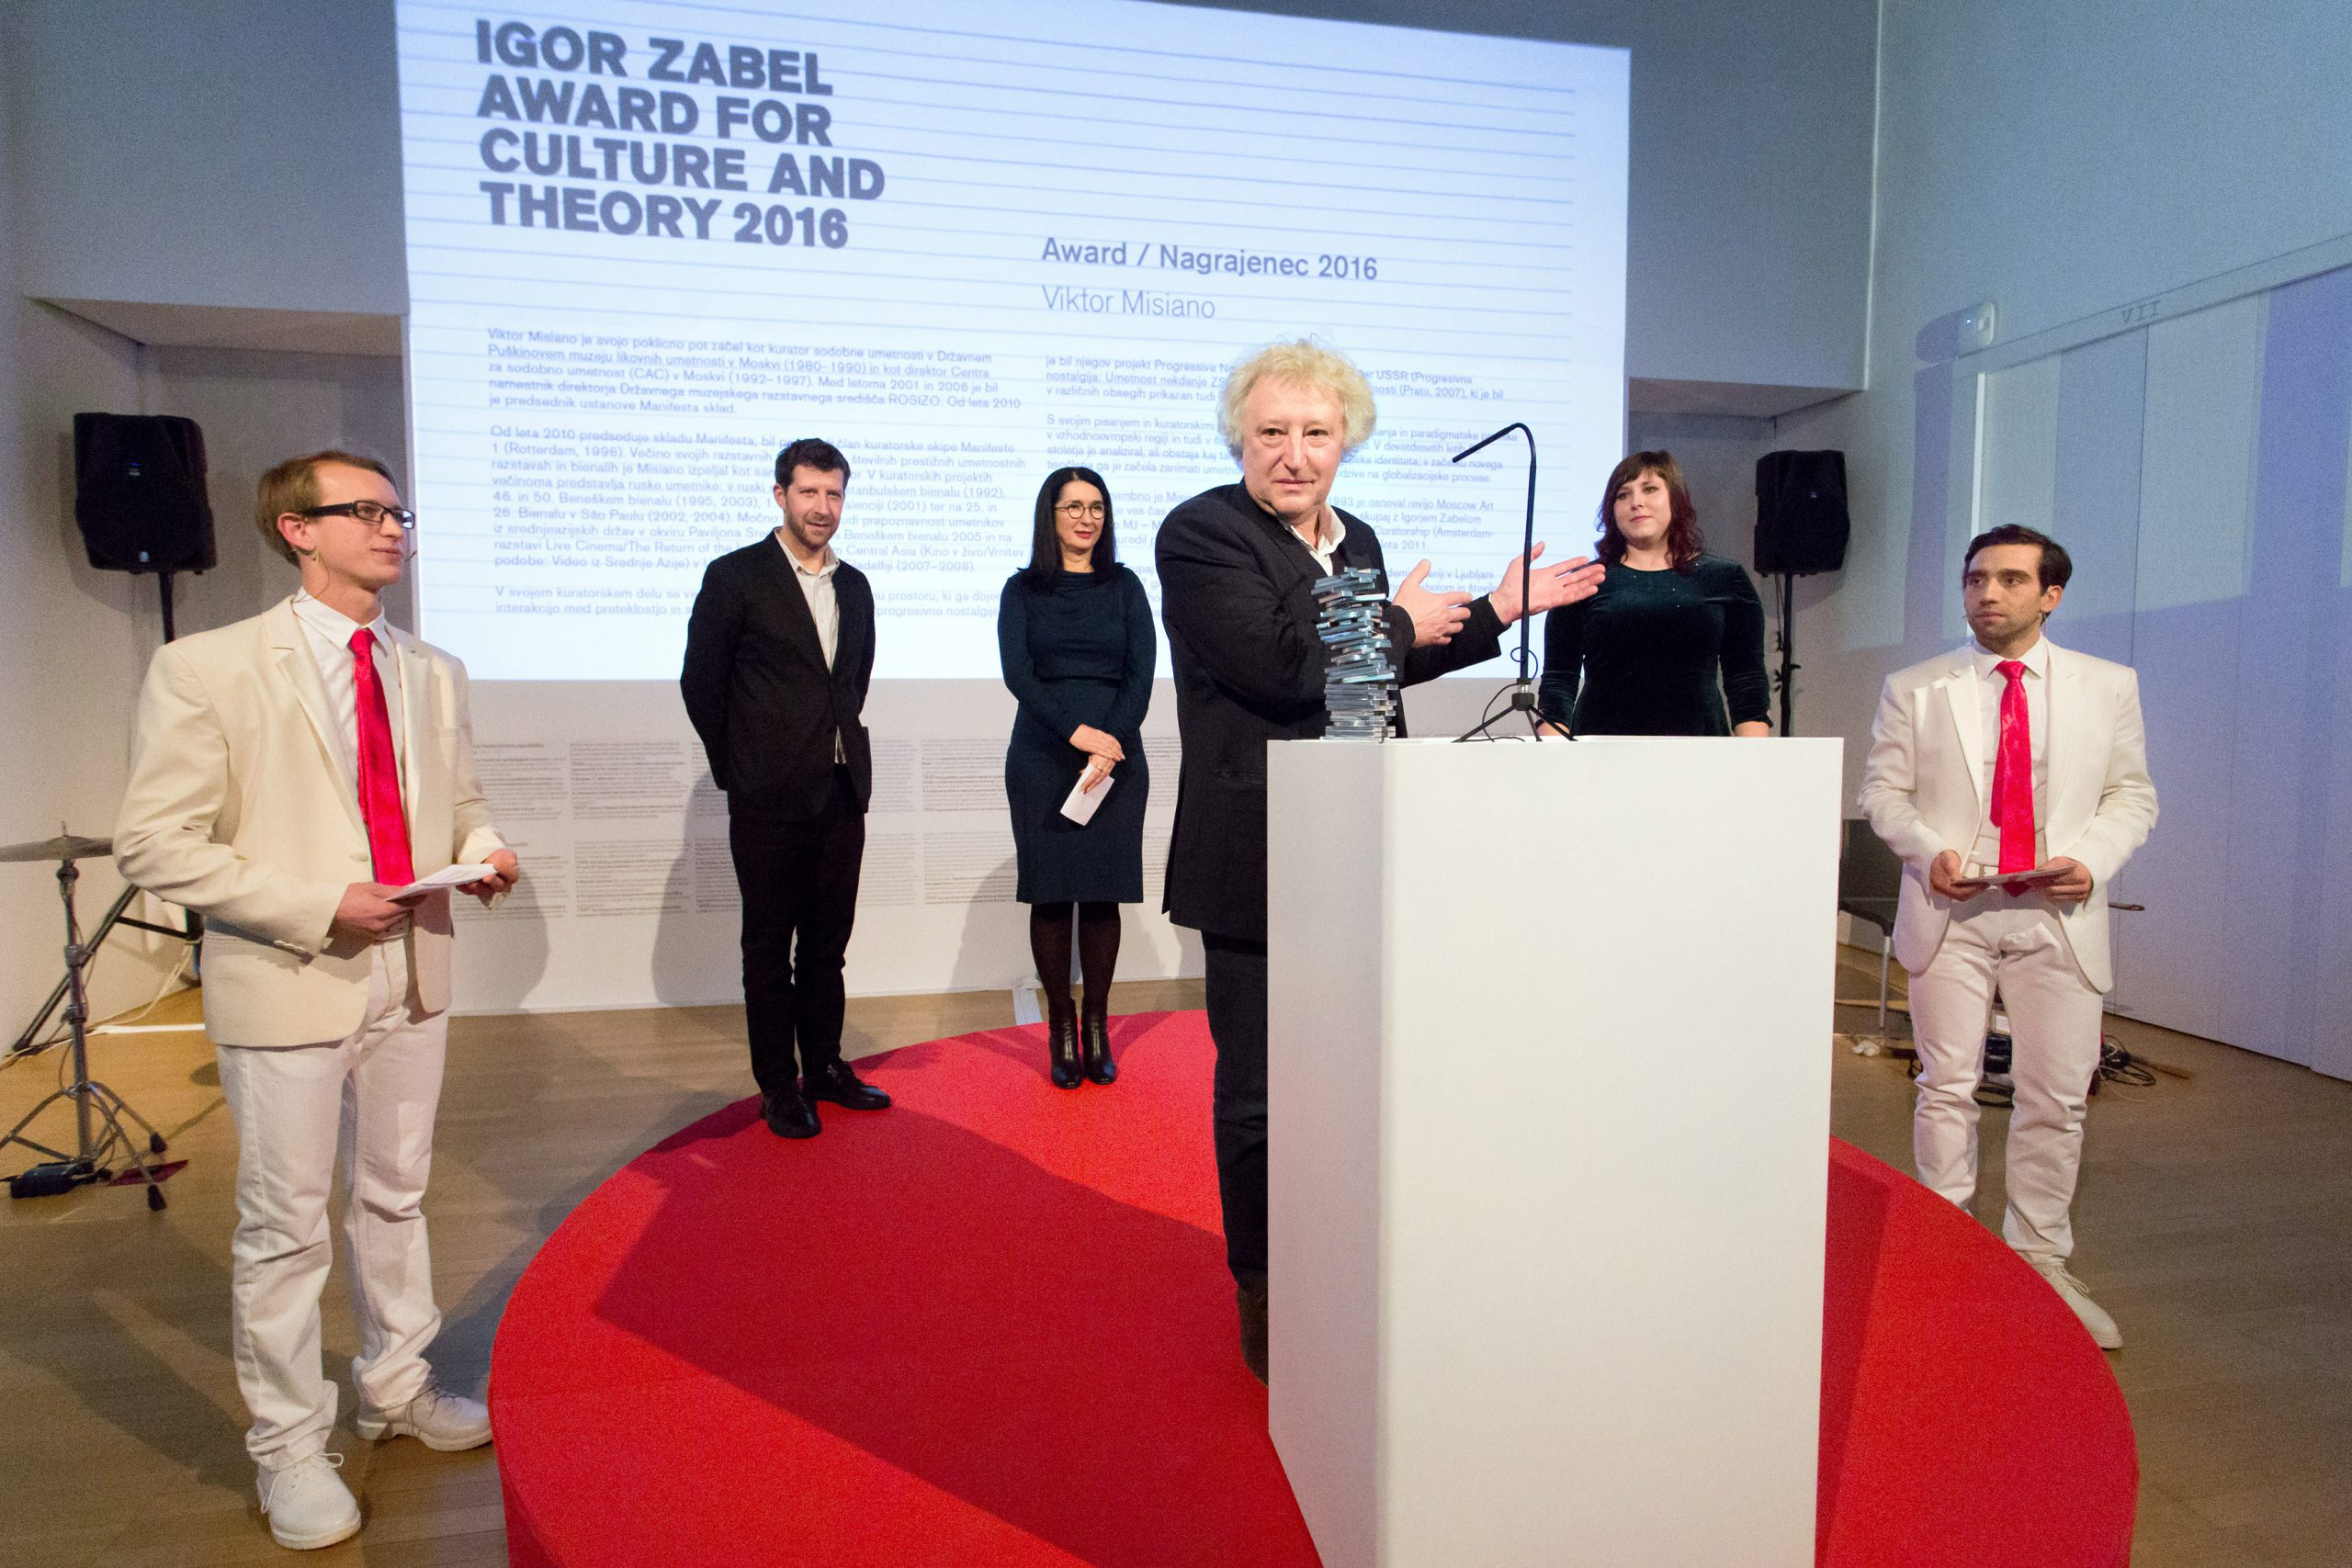 Award Ceremony, THE IGOR ZABEL AWARD FOR CULTURE AND THEORY 2016, Moderna galerija, 9.12.2016  http://www.igorzabel.org/en/news-detail/266_THE+IGOR+ZABEL+AWARD+FOR+CULTURE+AND+THEORY+2016